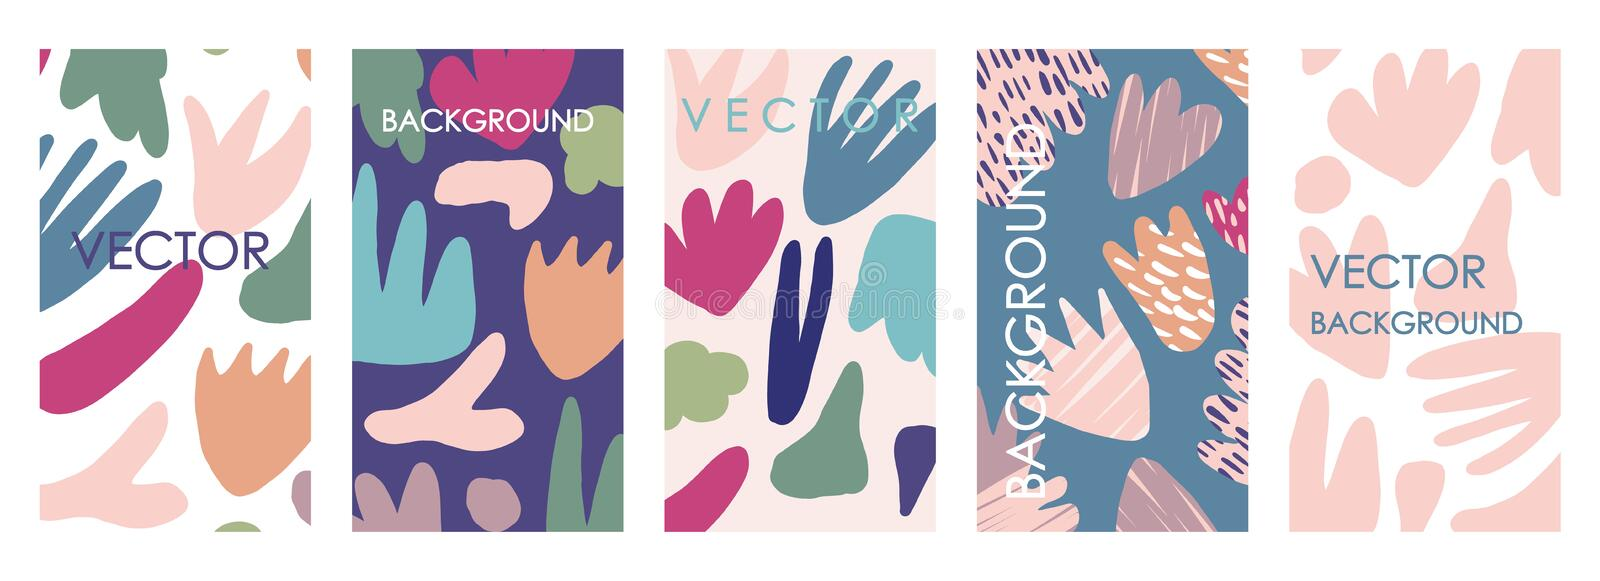 Vivid floral invitations and card template design. Abstract freehand vector set royalty free illustration